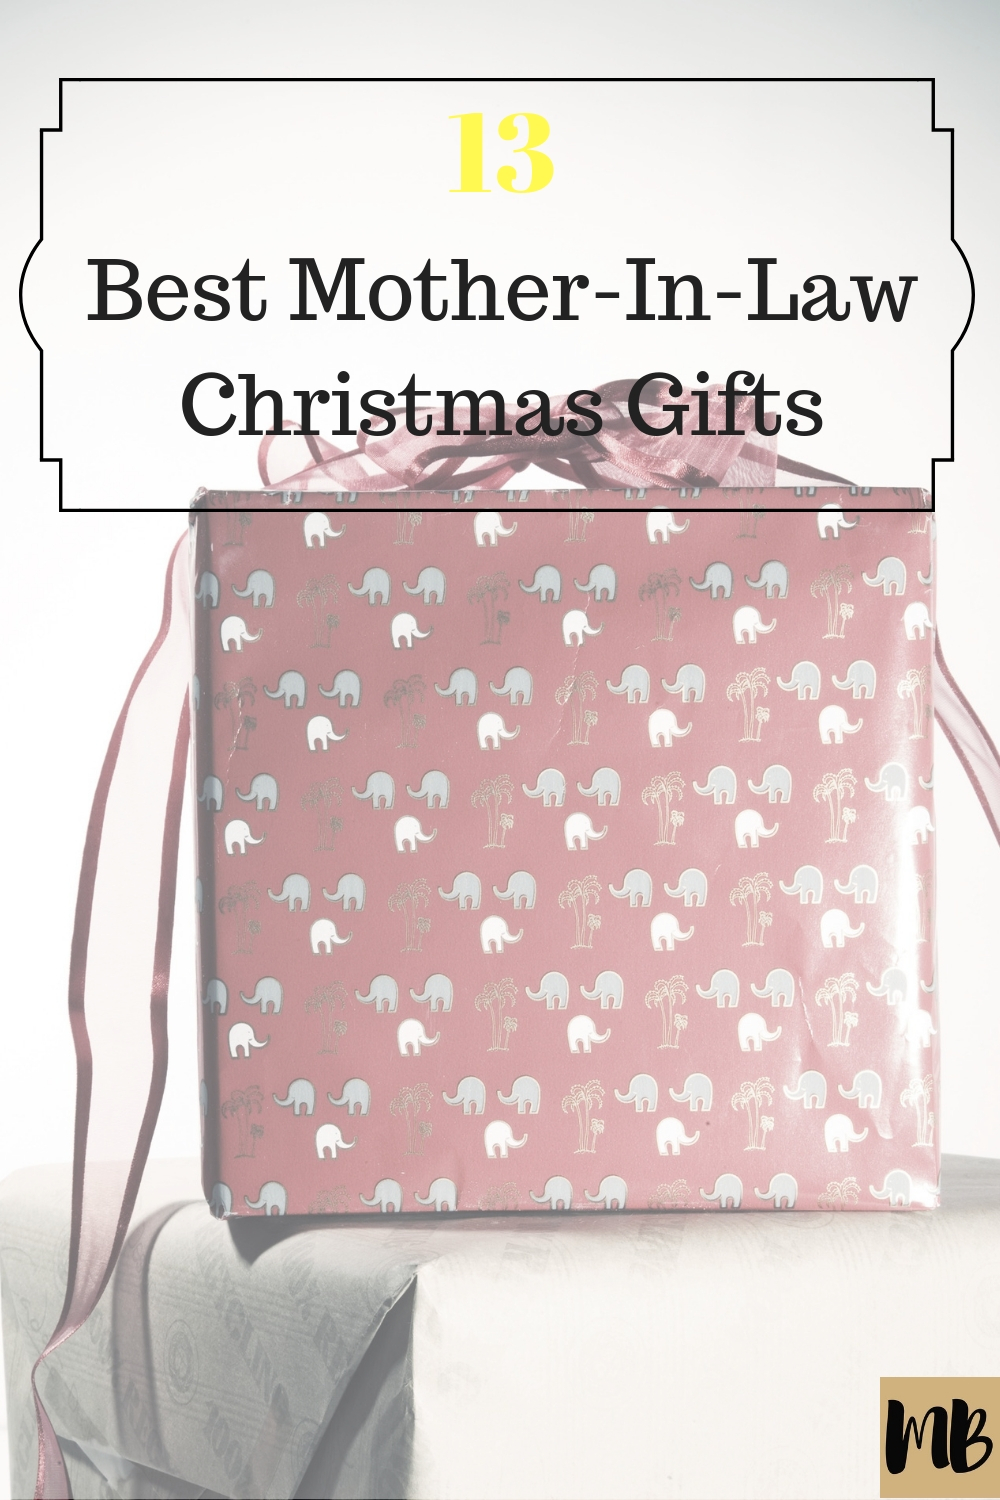 Best Mother In Law Christmas Gifts Title - Millennial Boss